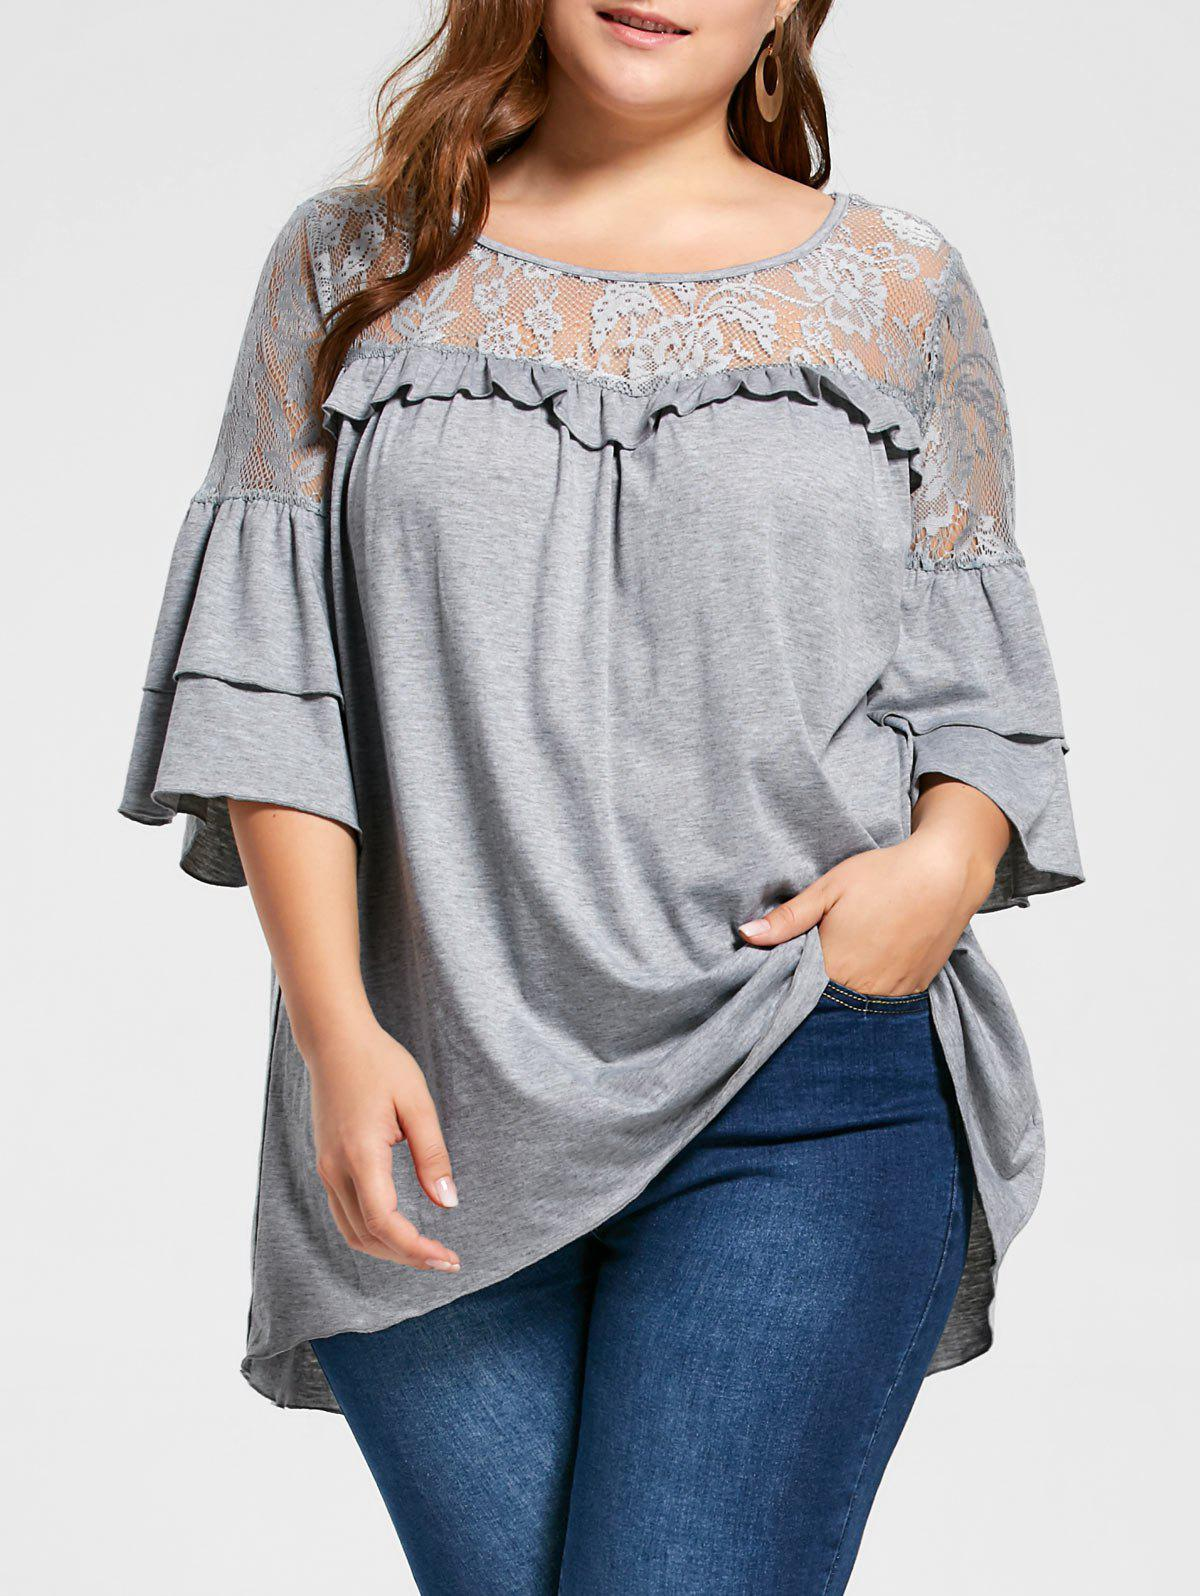 Plus Size Lace Yoke Flounced Tunic TopWOMEN<br><br>Size: 2XL; Color: LIGHT GRAY; Material: Polyester,Spandex; Shirt Length: Long; Sleeve Length: Three Quarter; Collar: Round Neck; Style: Casual; Season: Fall,Spring,Summer; Embellishment: Lace; Pattern Type: Solid; Weight: 0.3200kg; Package Contents: 1 x Top;